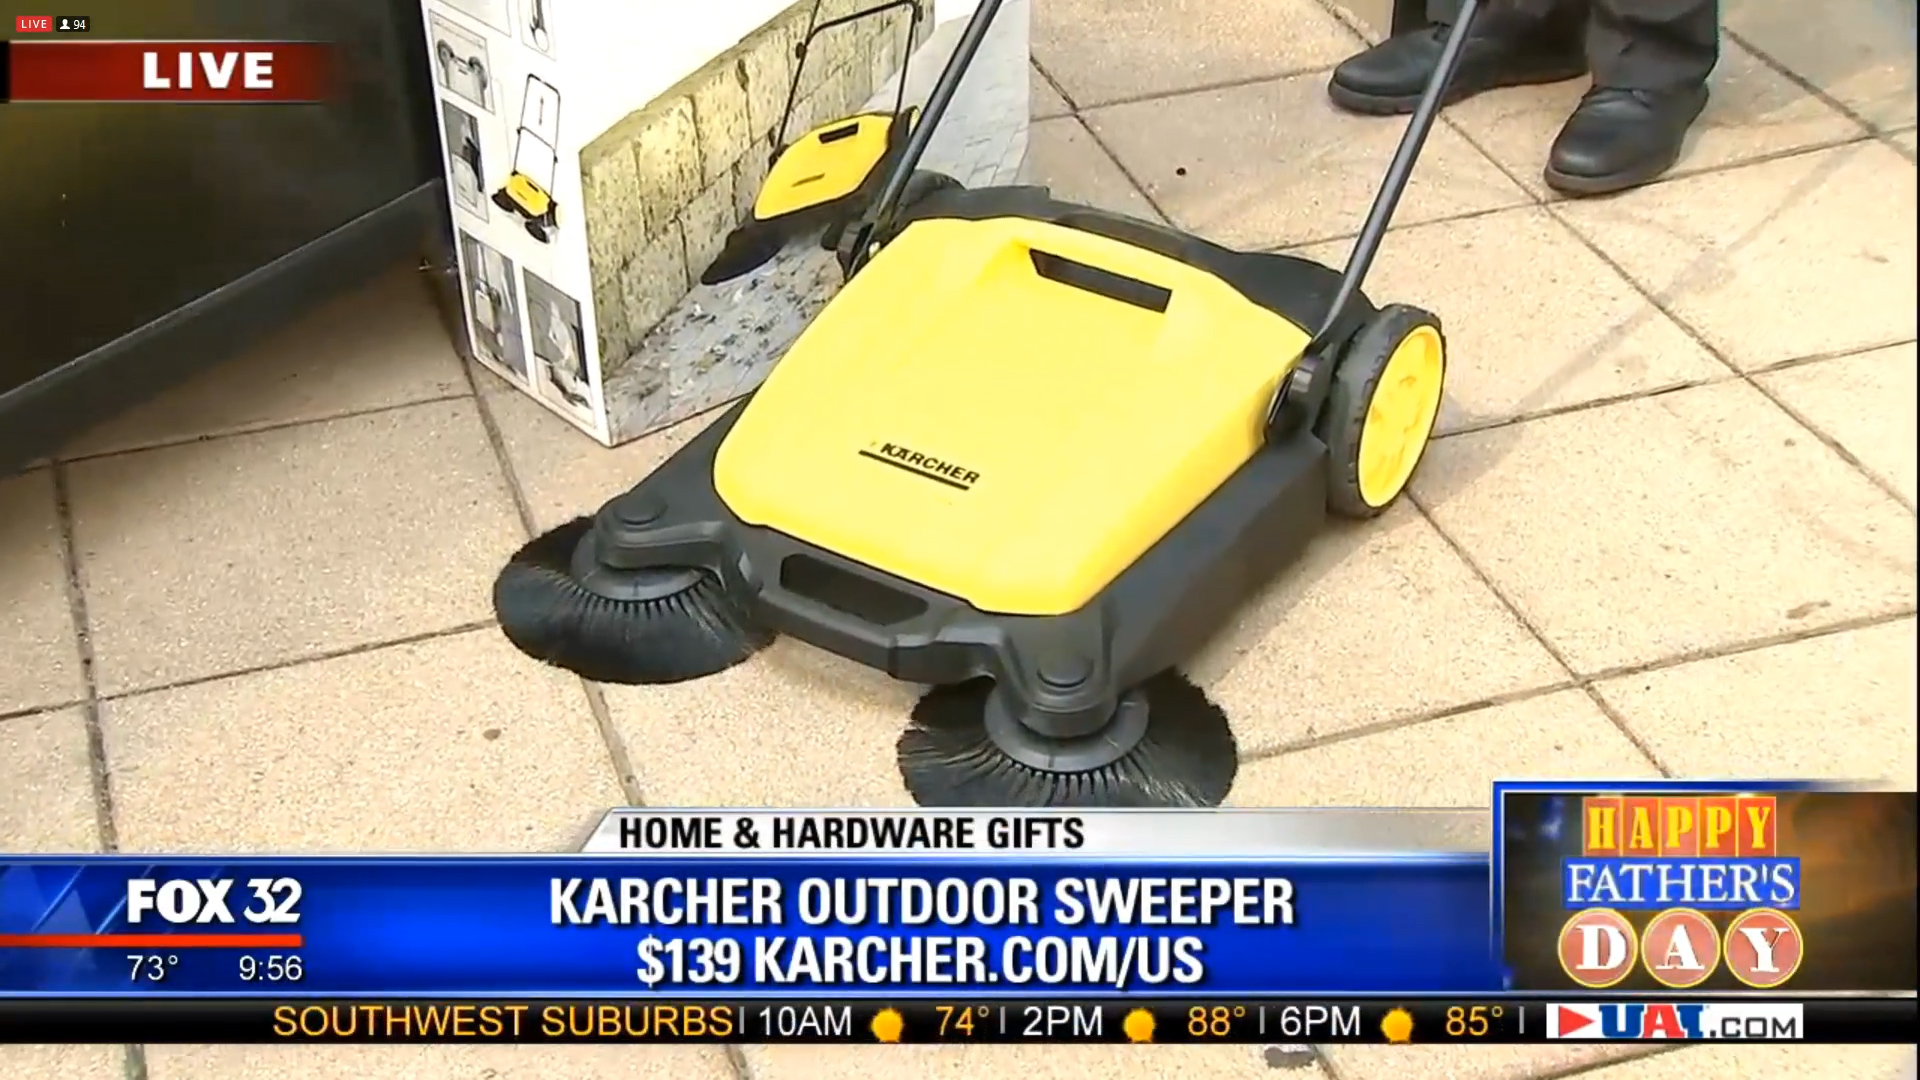 KARCHER S-650 OUTDOOR SWEEPER - $139.00Shop Now